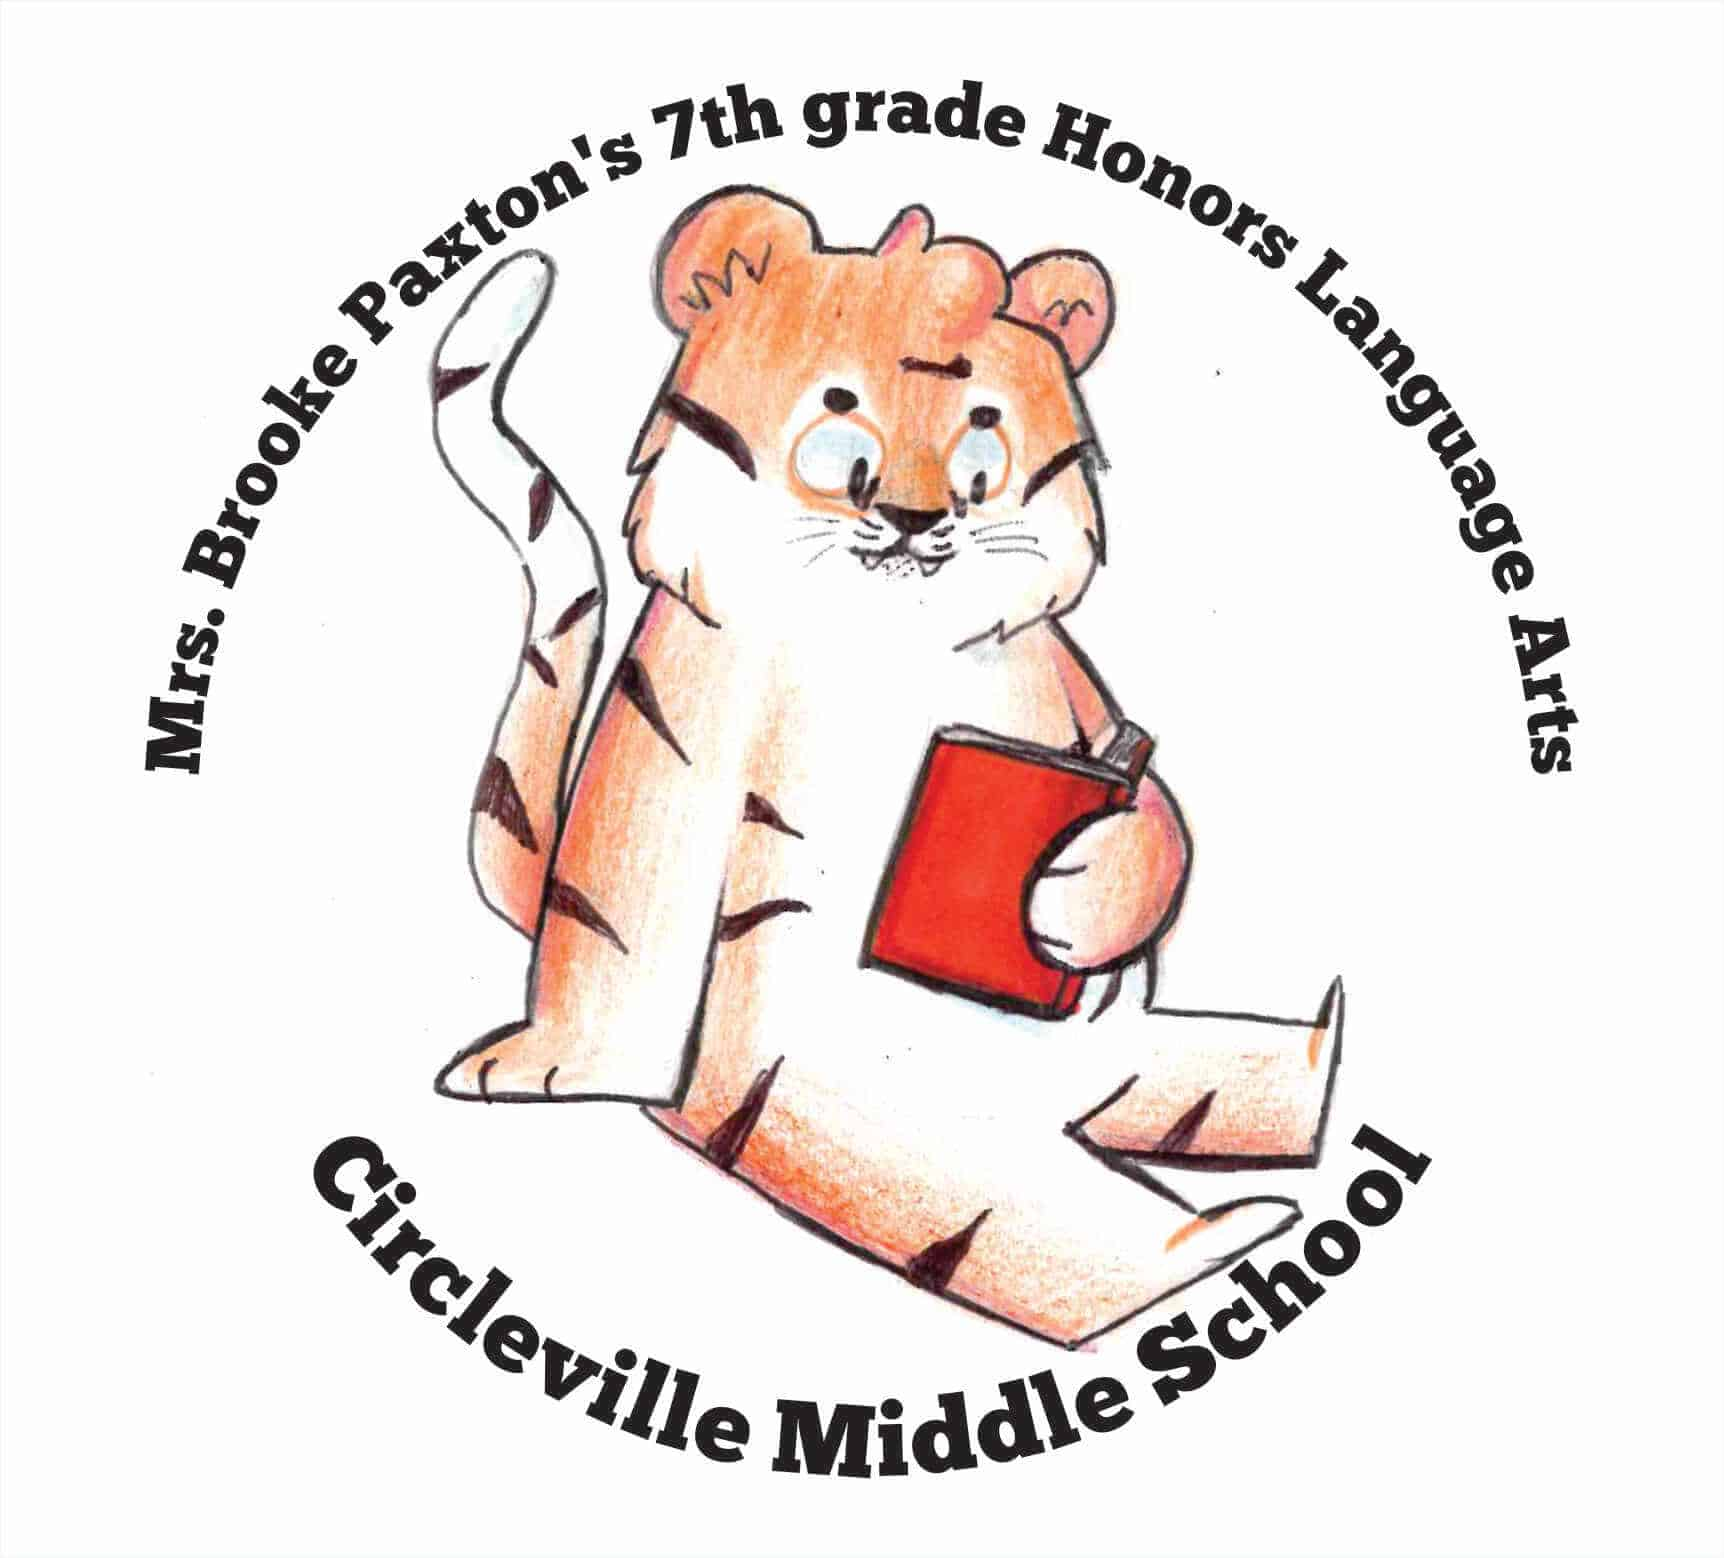 Circleville Middle School Authors